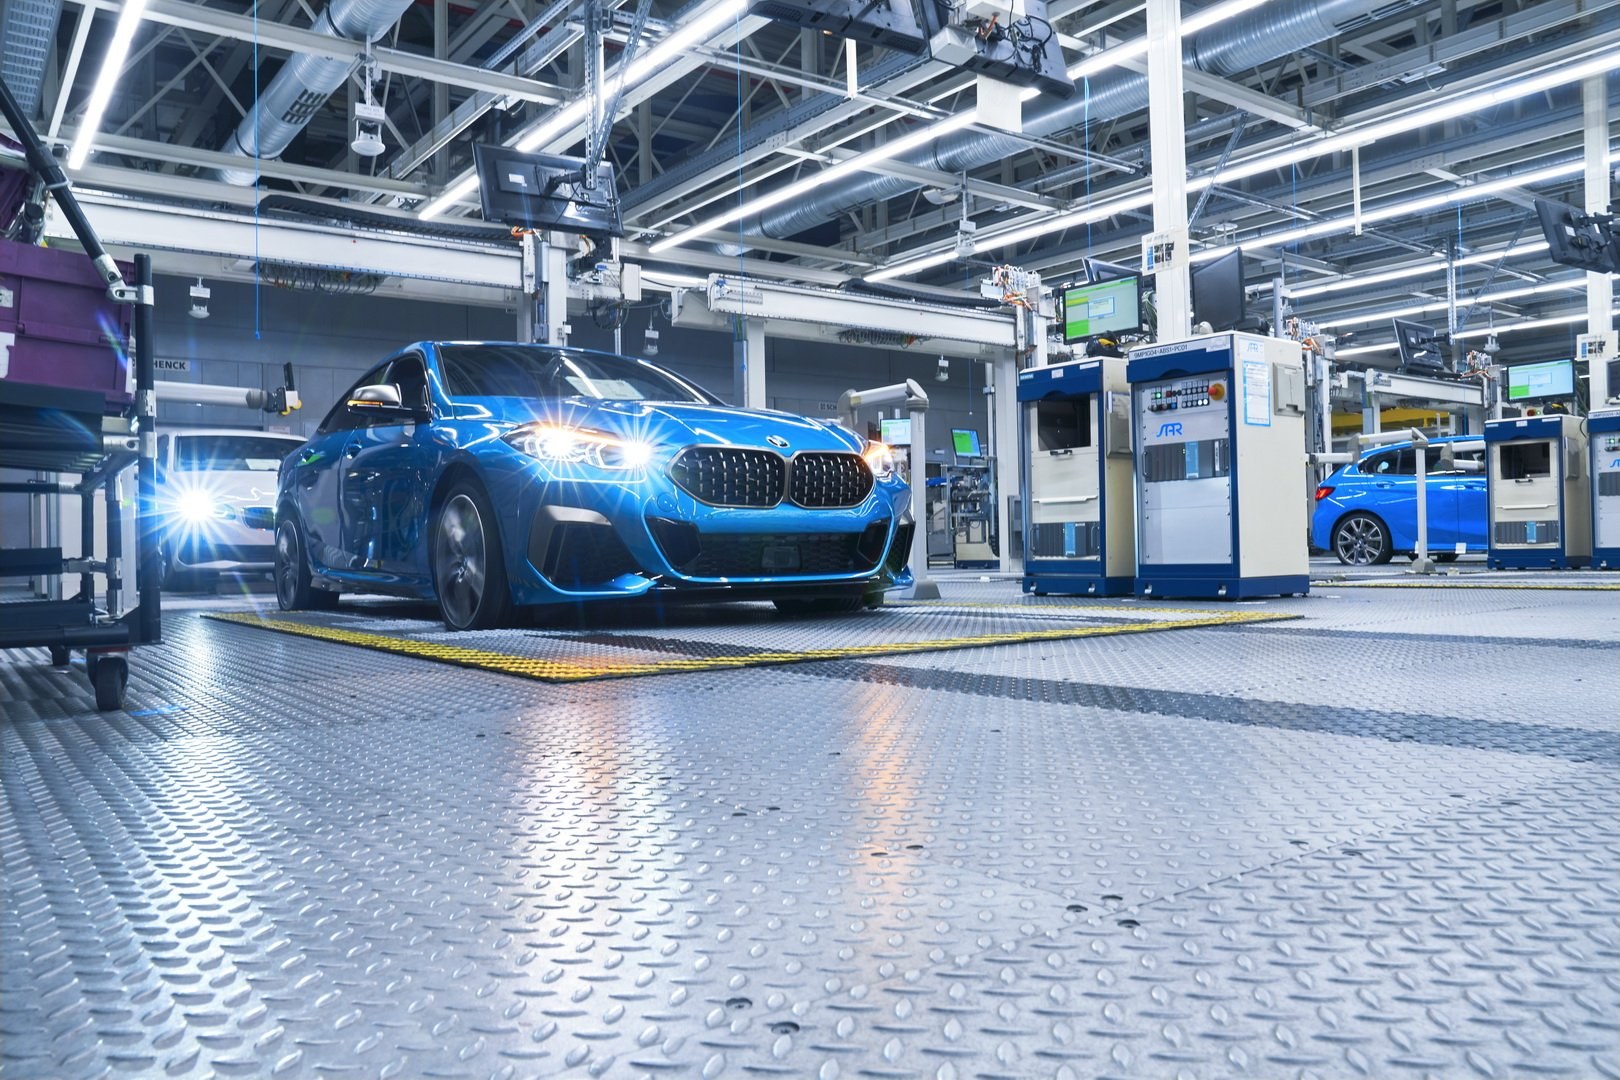 2020-bmw-2-series-gran-coupe-production-leipzig-16